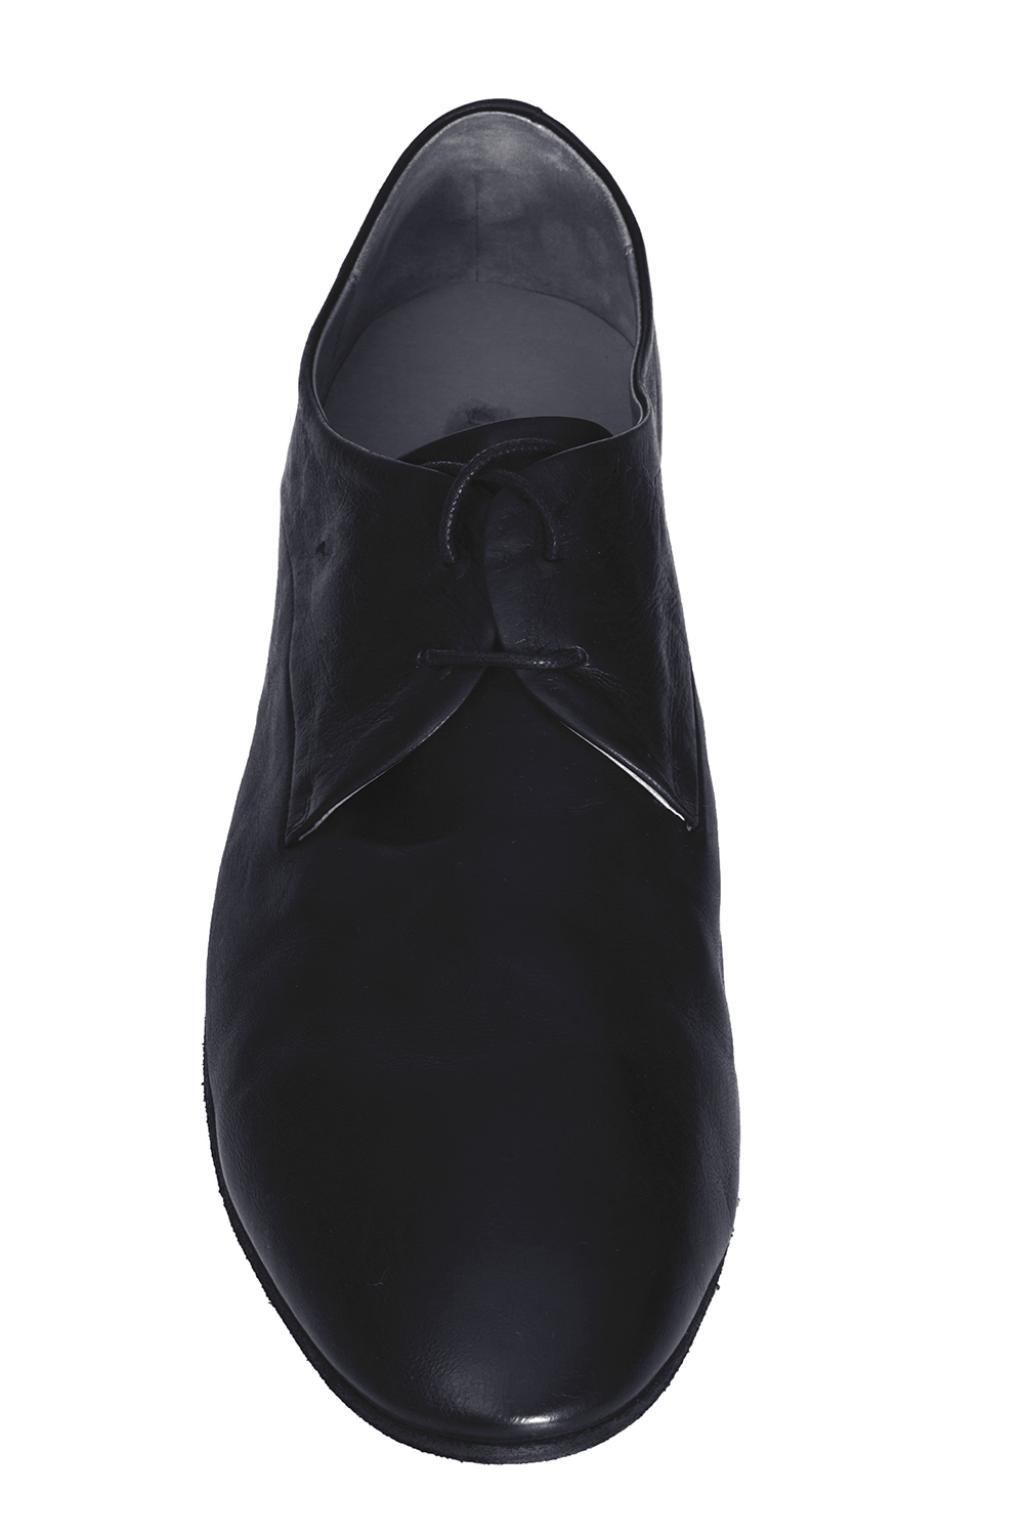 Marsèll Lace-up Leather Shoes in Black for Men